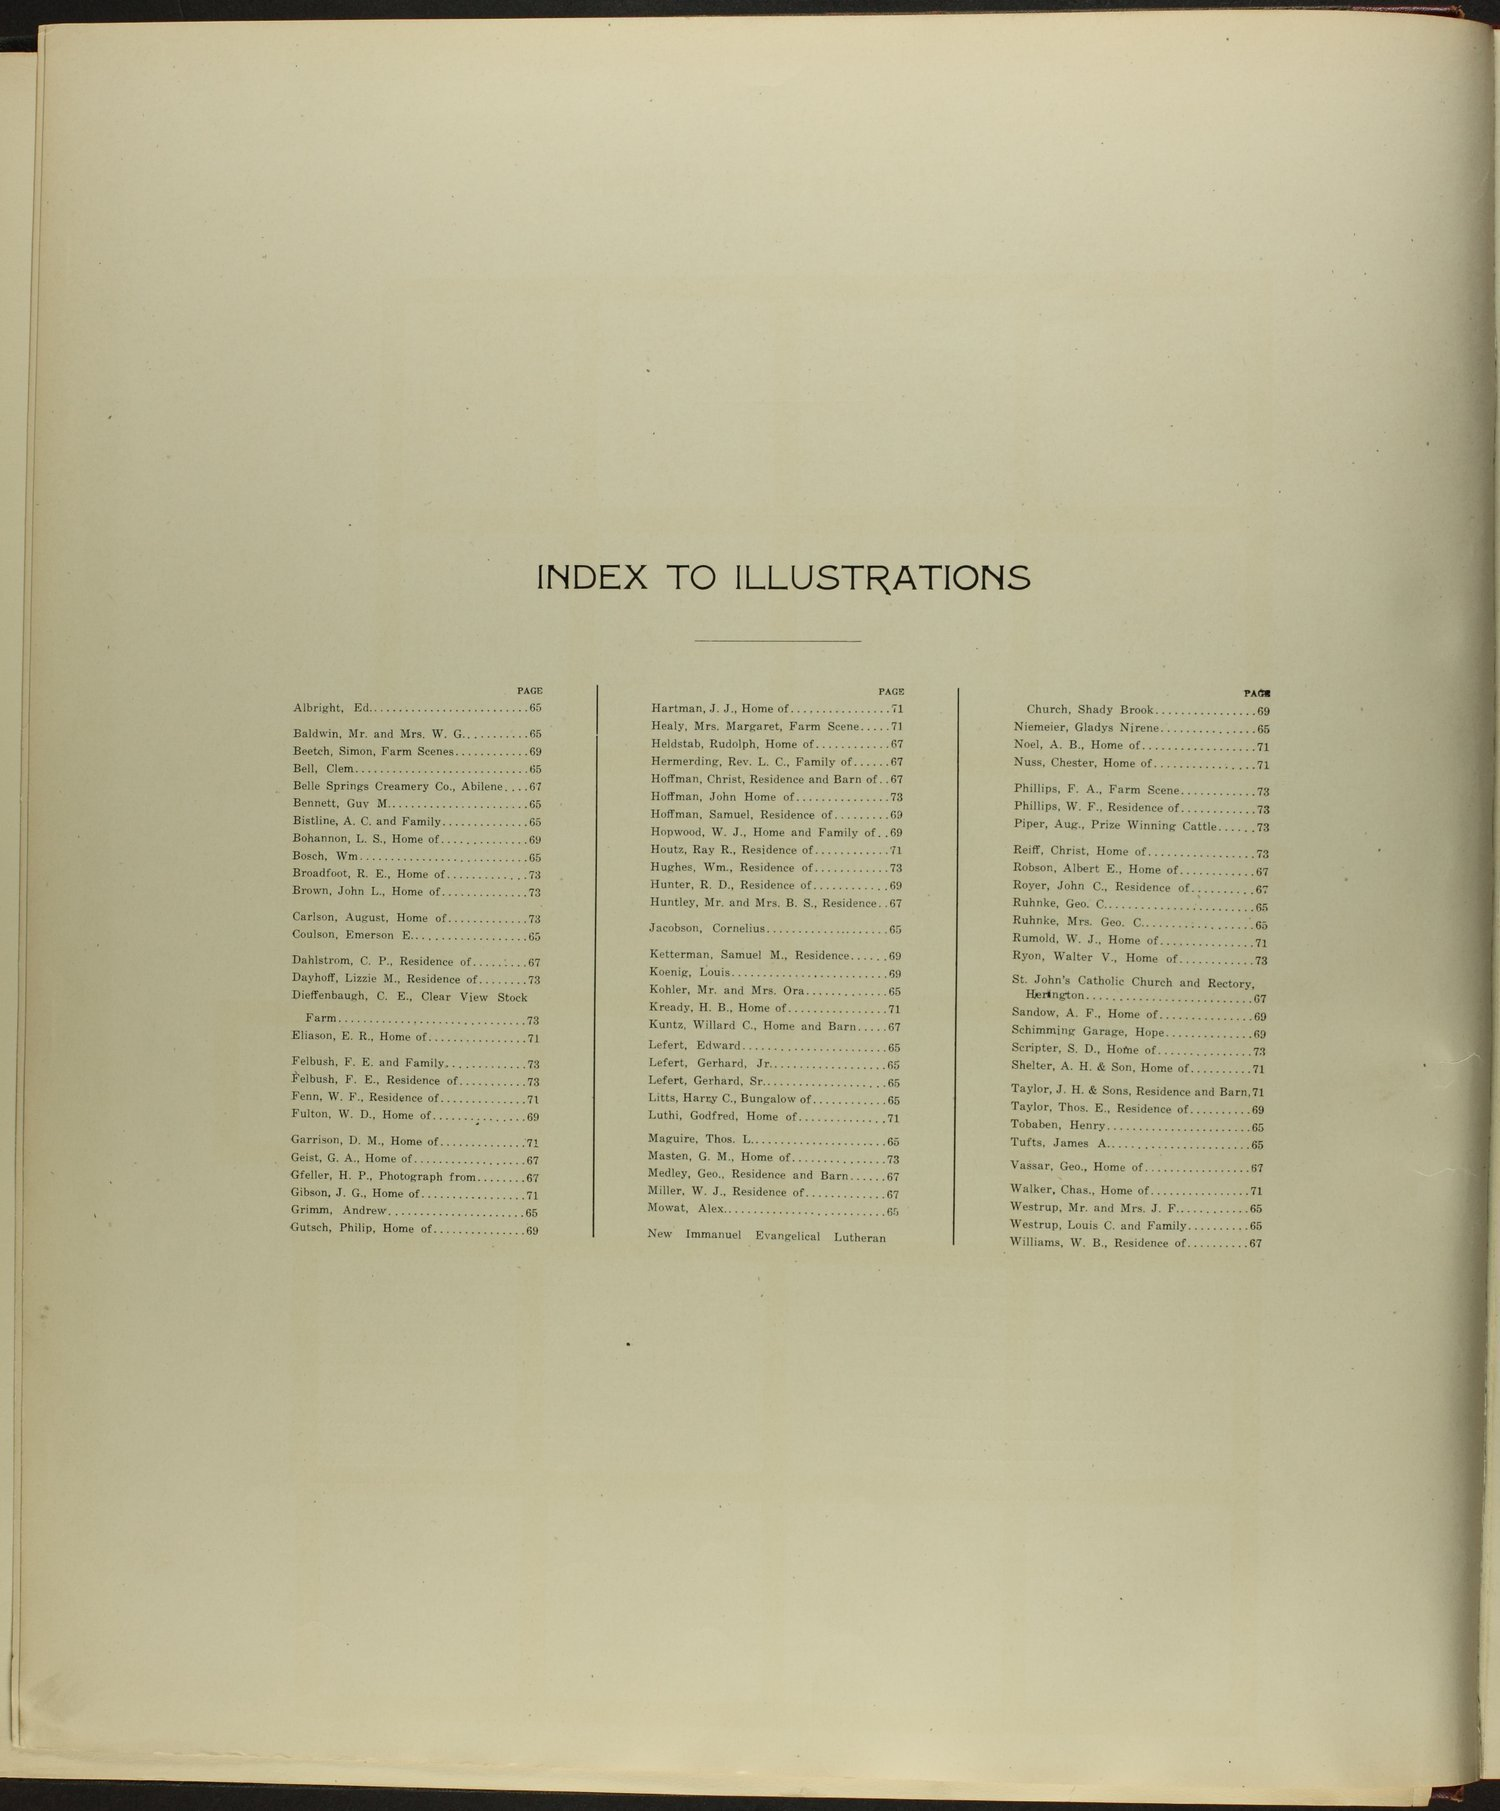 Standard atlas of Dickinson County, Kansas - Index to Illustrations